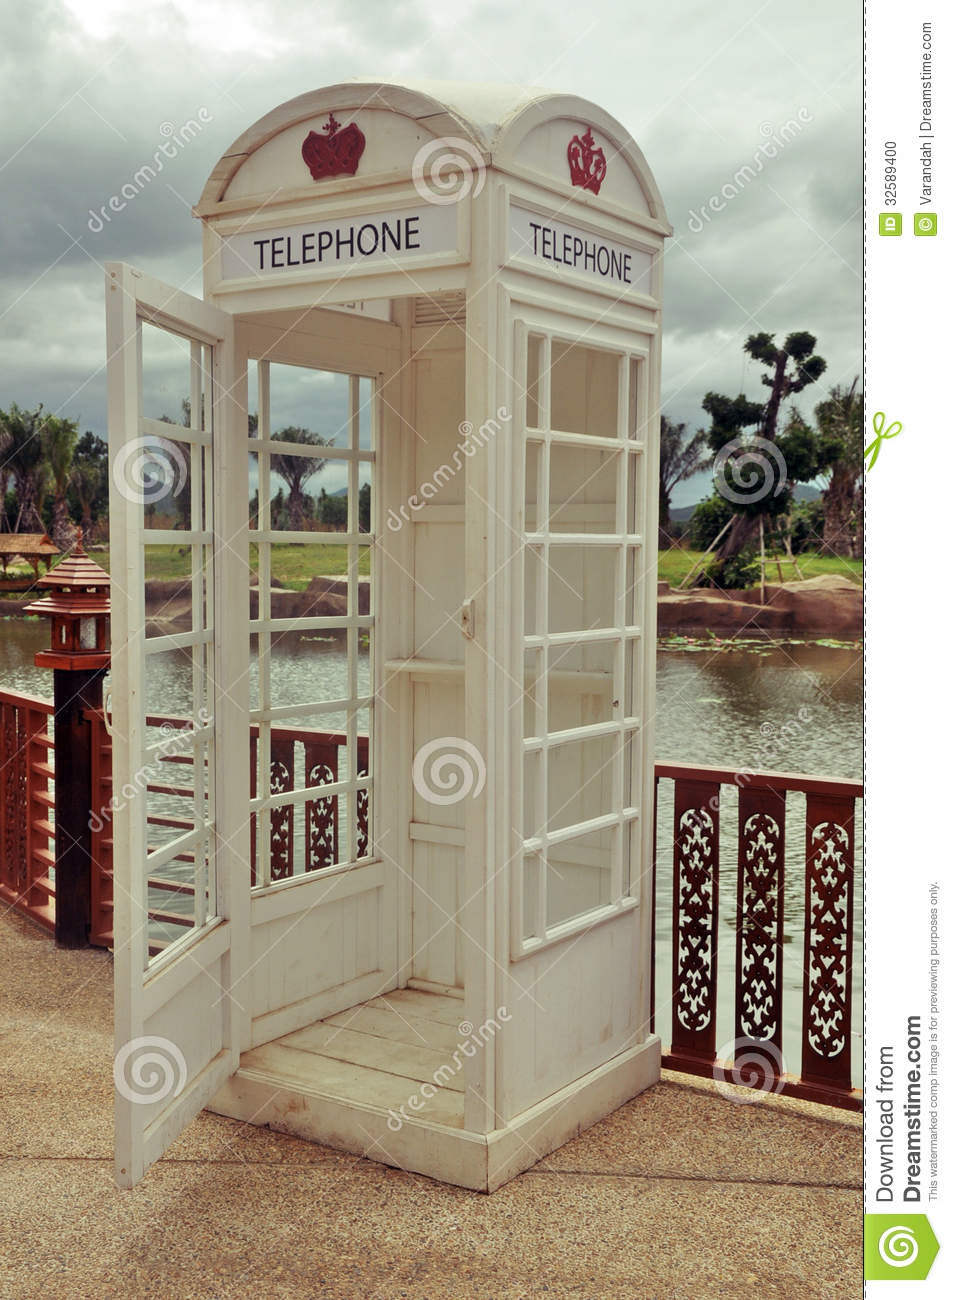 Classic Vintage White Phone Booth Stock Photo Image Of